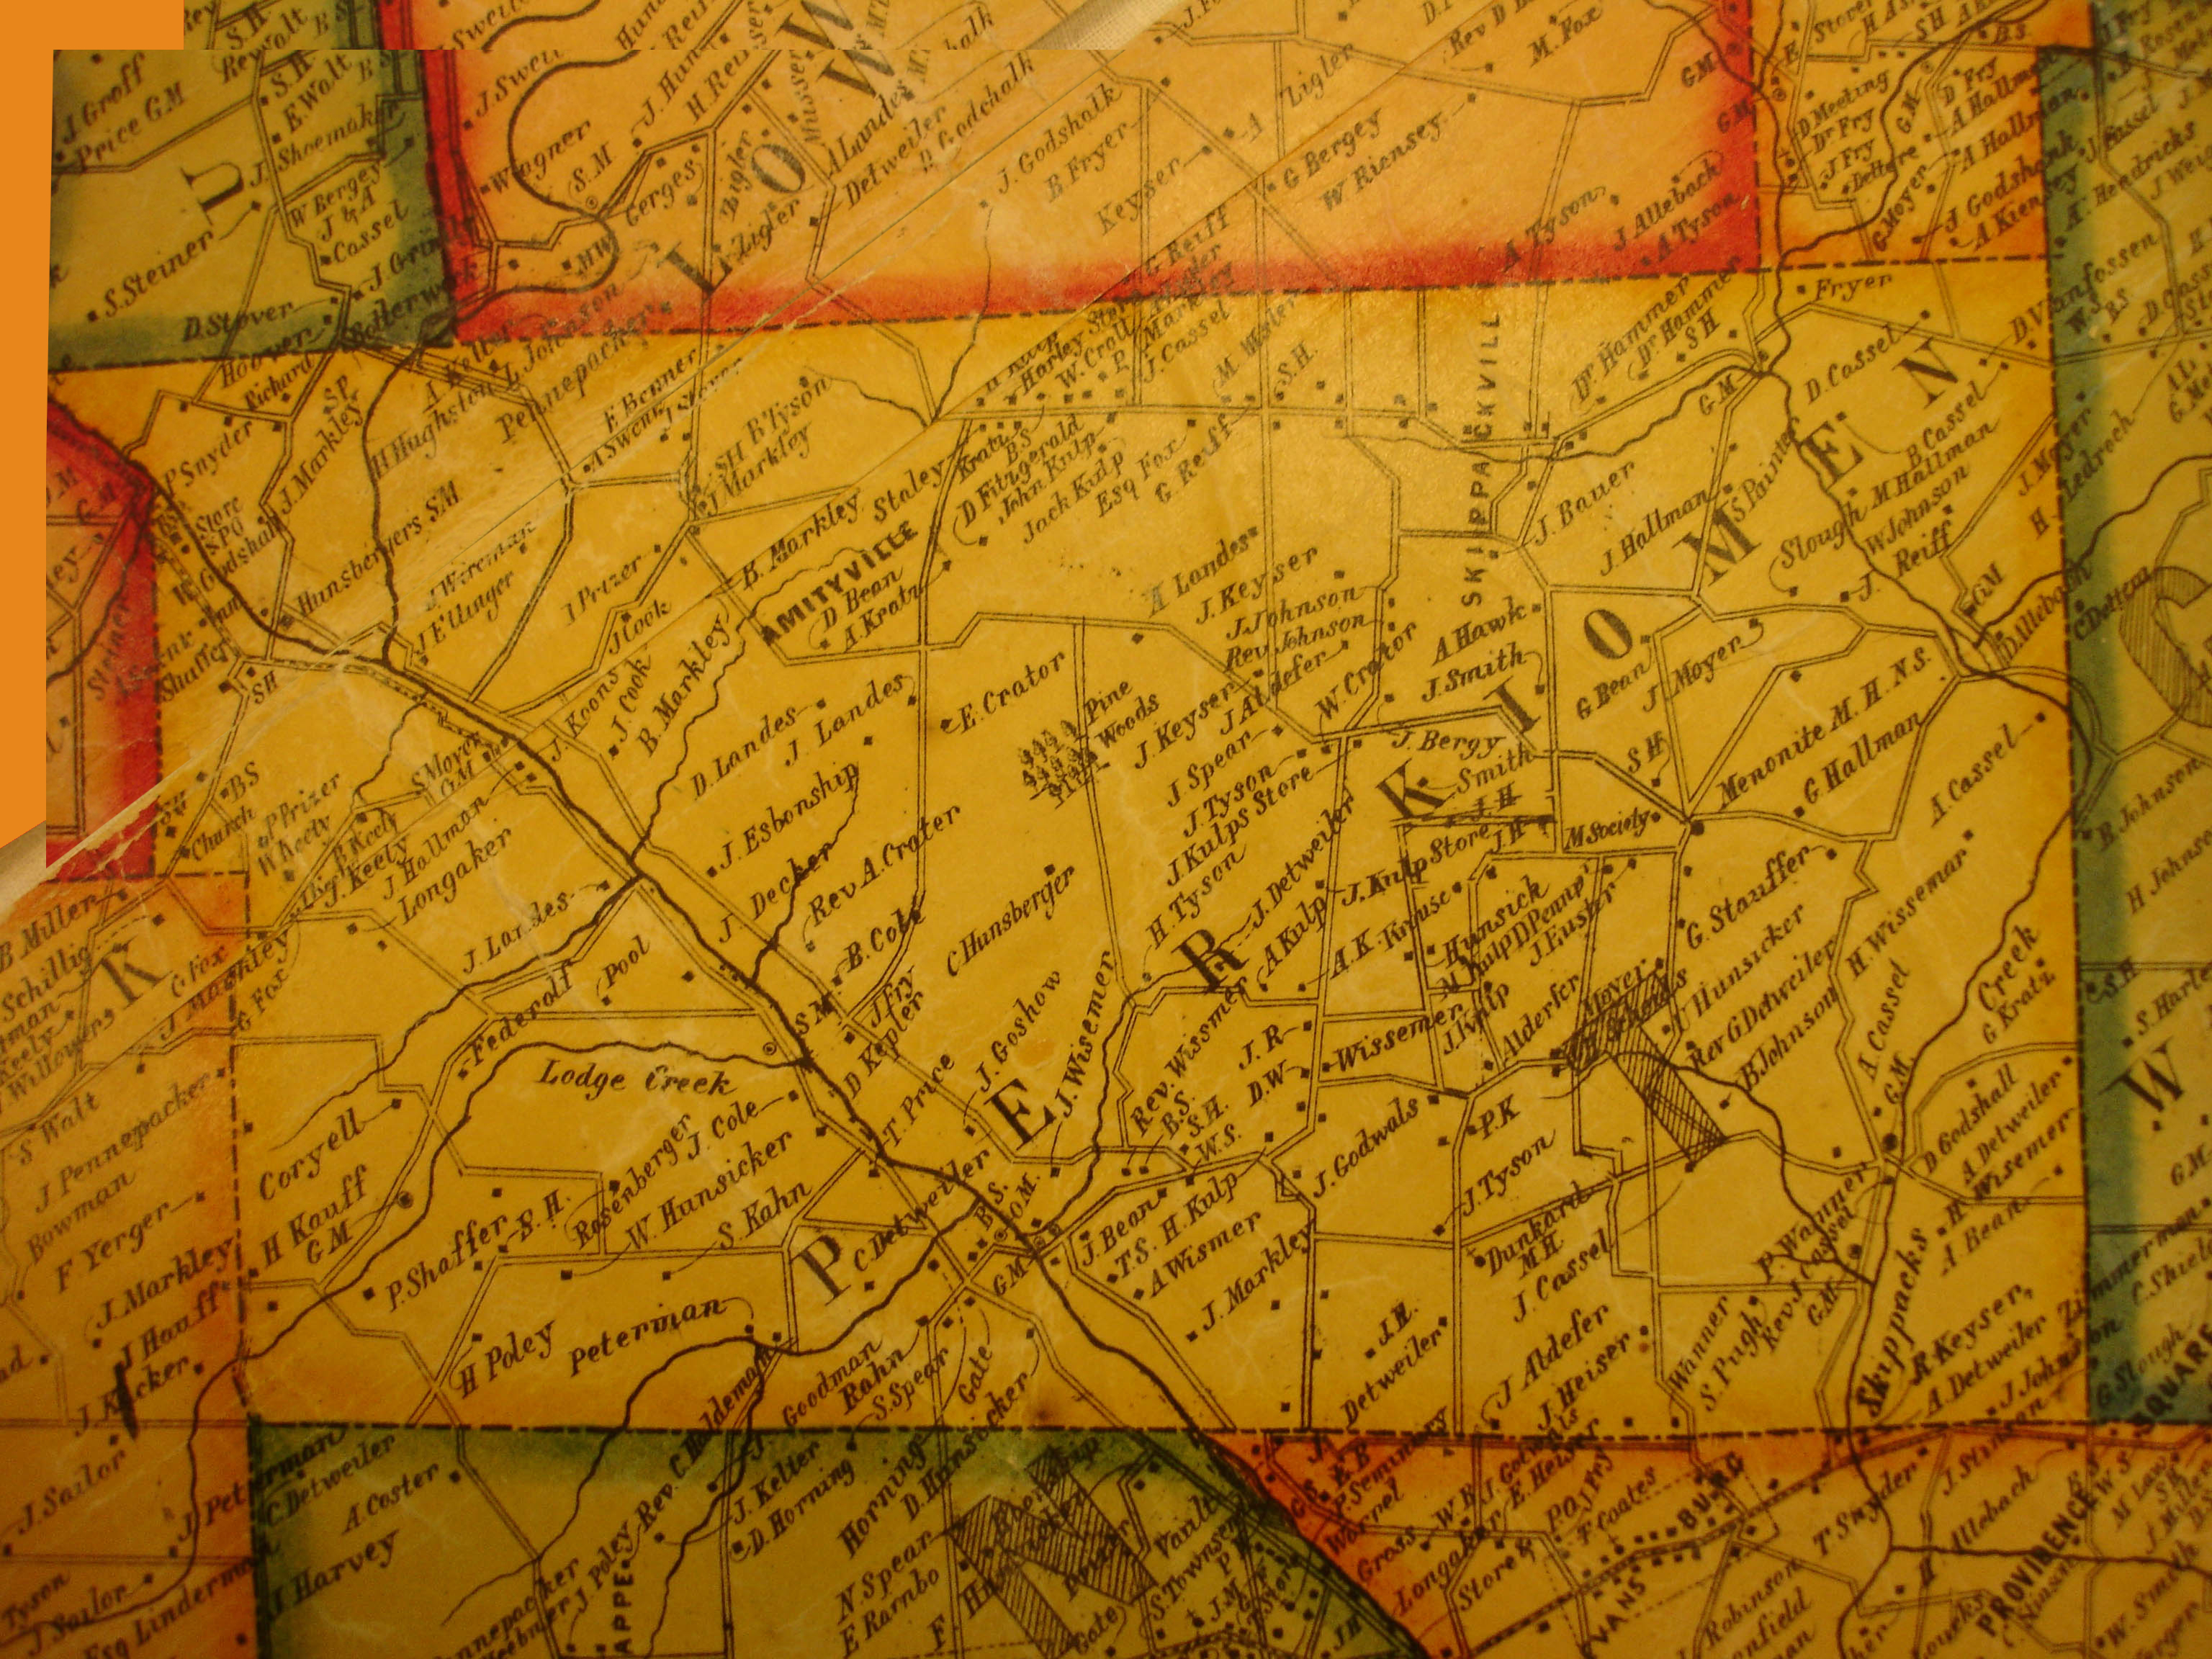 File:Map of Perkiomen and Skippack Township, Montgomery ... on berks county, plymouth township pa map, king of prussia, lancaster county pa map, lehigh valley, tioga county pa map, fulton county pa map, monroe county pa map, allegheny county, schuylkill county, pennsylvania county map, washington county pa map, chester county road map, hazleton pa map, westmoreland county pa map, somerset county pa map, bucks county, philadelphia zip code map, washington county, north wales, philadelphia county, lehigh county pa map, wayne county pa map, lancaster county, lehigh county, delaware county, carbon county pa map, crawford county pa map, monroe county, downingtown pa map, chester county, franklin county, northampton county pa map, bucks county pa map, jenkintown pa map, lackawanna county, delaware valley,